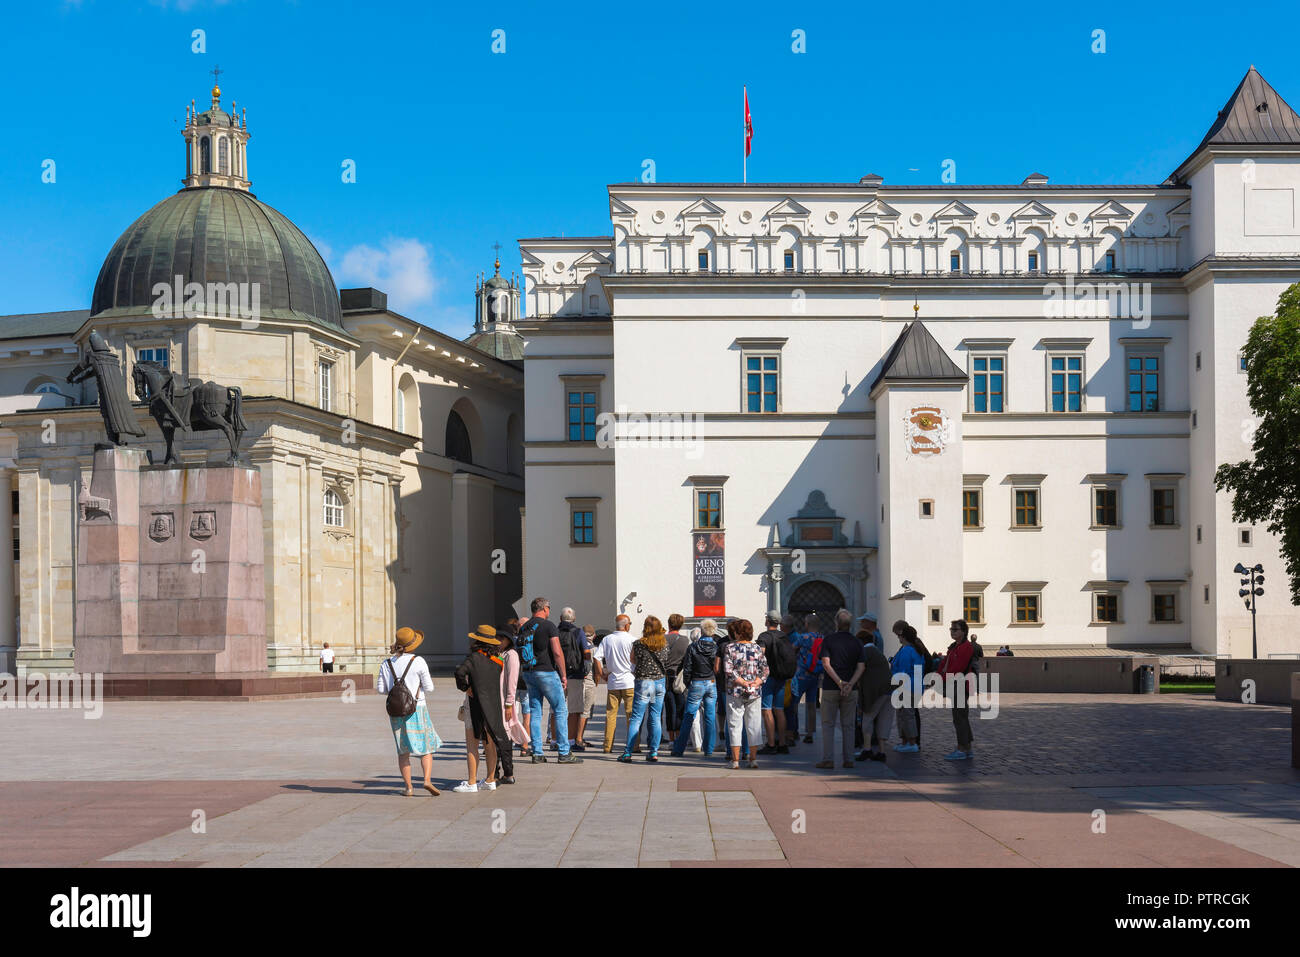 Tourism tourists europe, a tour group stands in Cathedral Square in Vilnius on a summer morning looking at the Palace of the Grand Dukes of Lithuania. - Stock Image